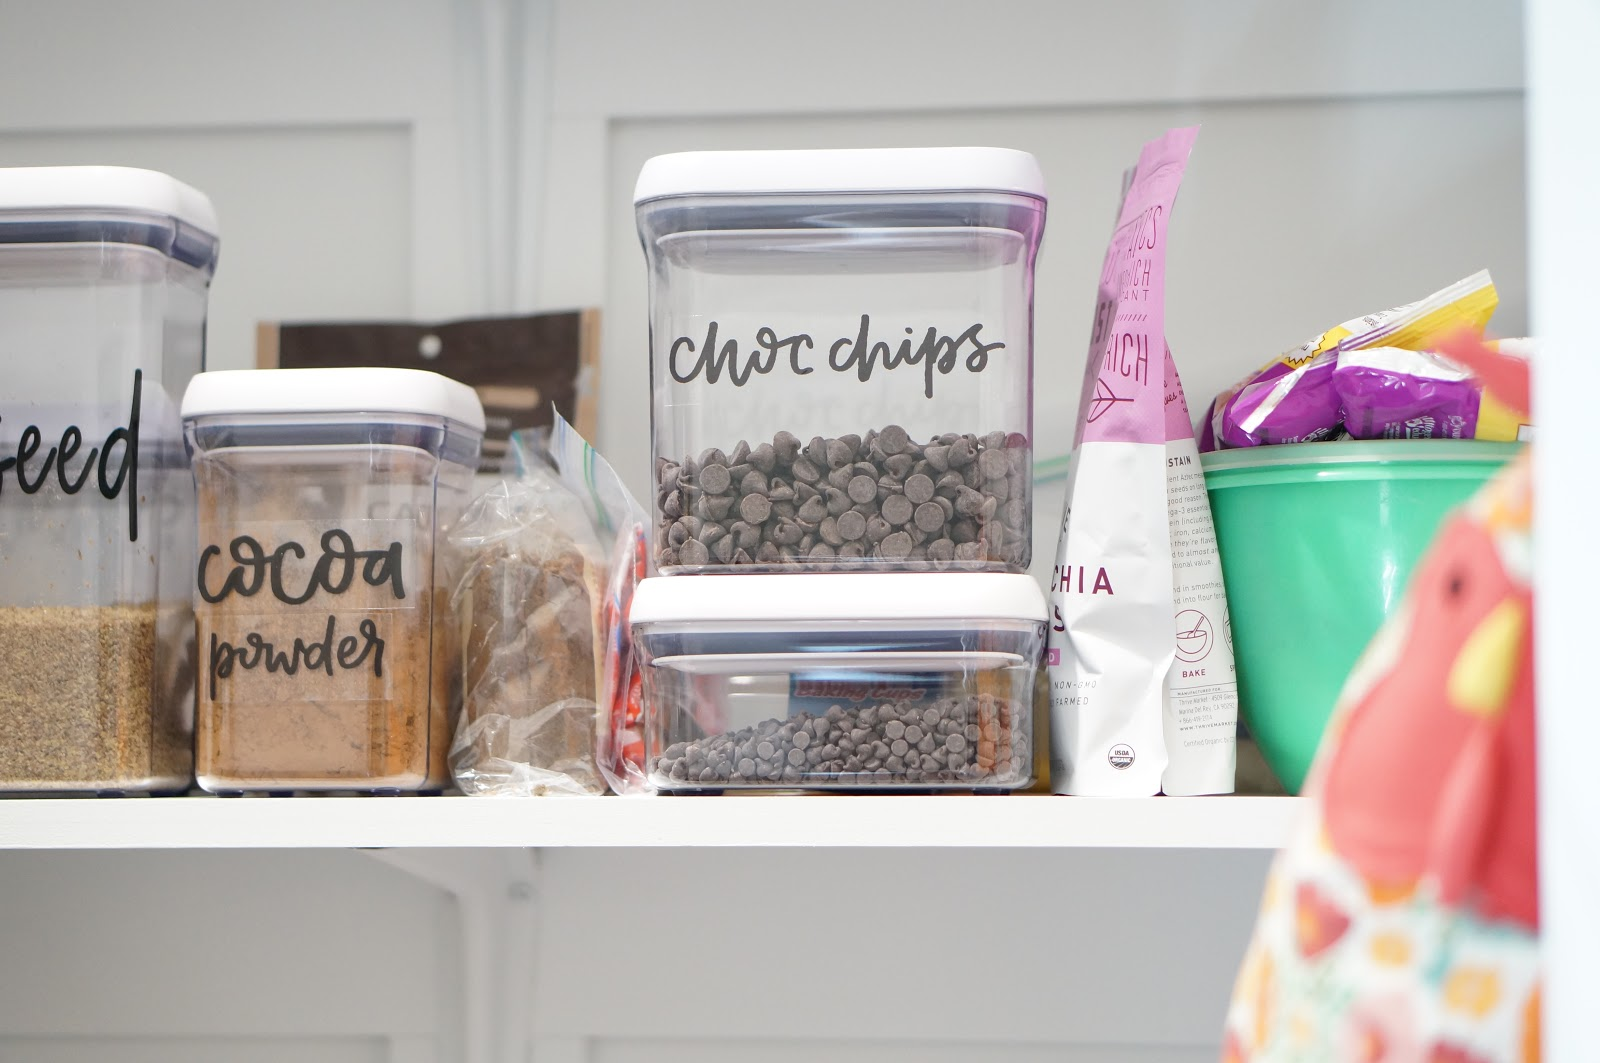 PANTRY IDEAS | PACKING LUNCHES & BEING ORGANIZED by North Carolina lifestyle blogger Rebecca Lately